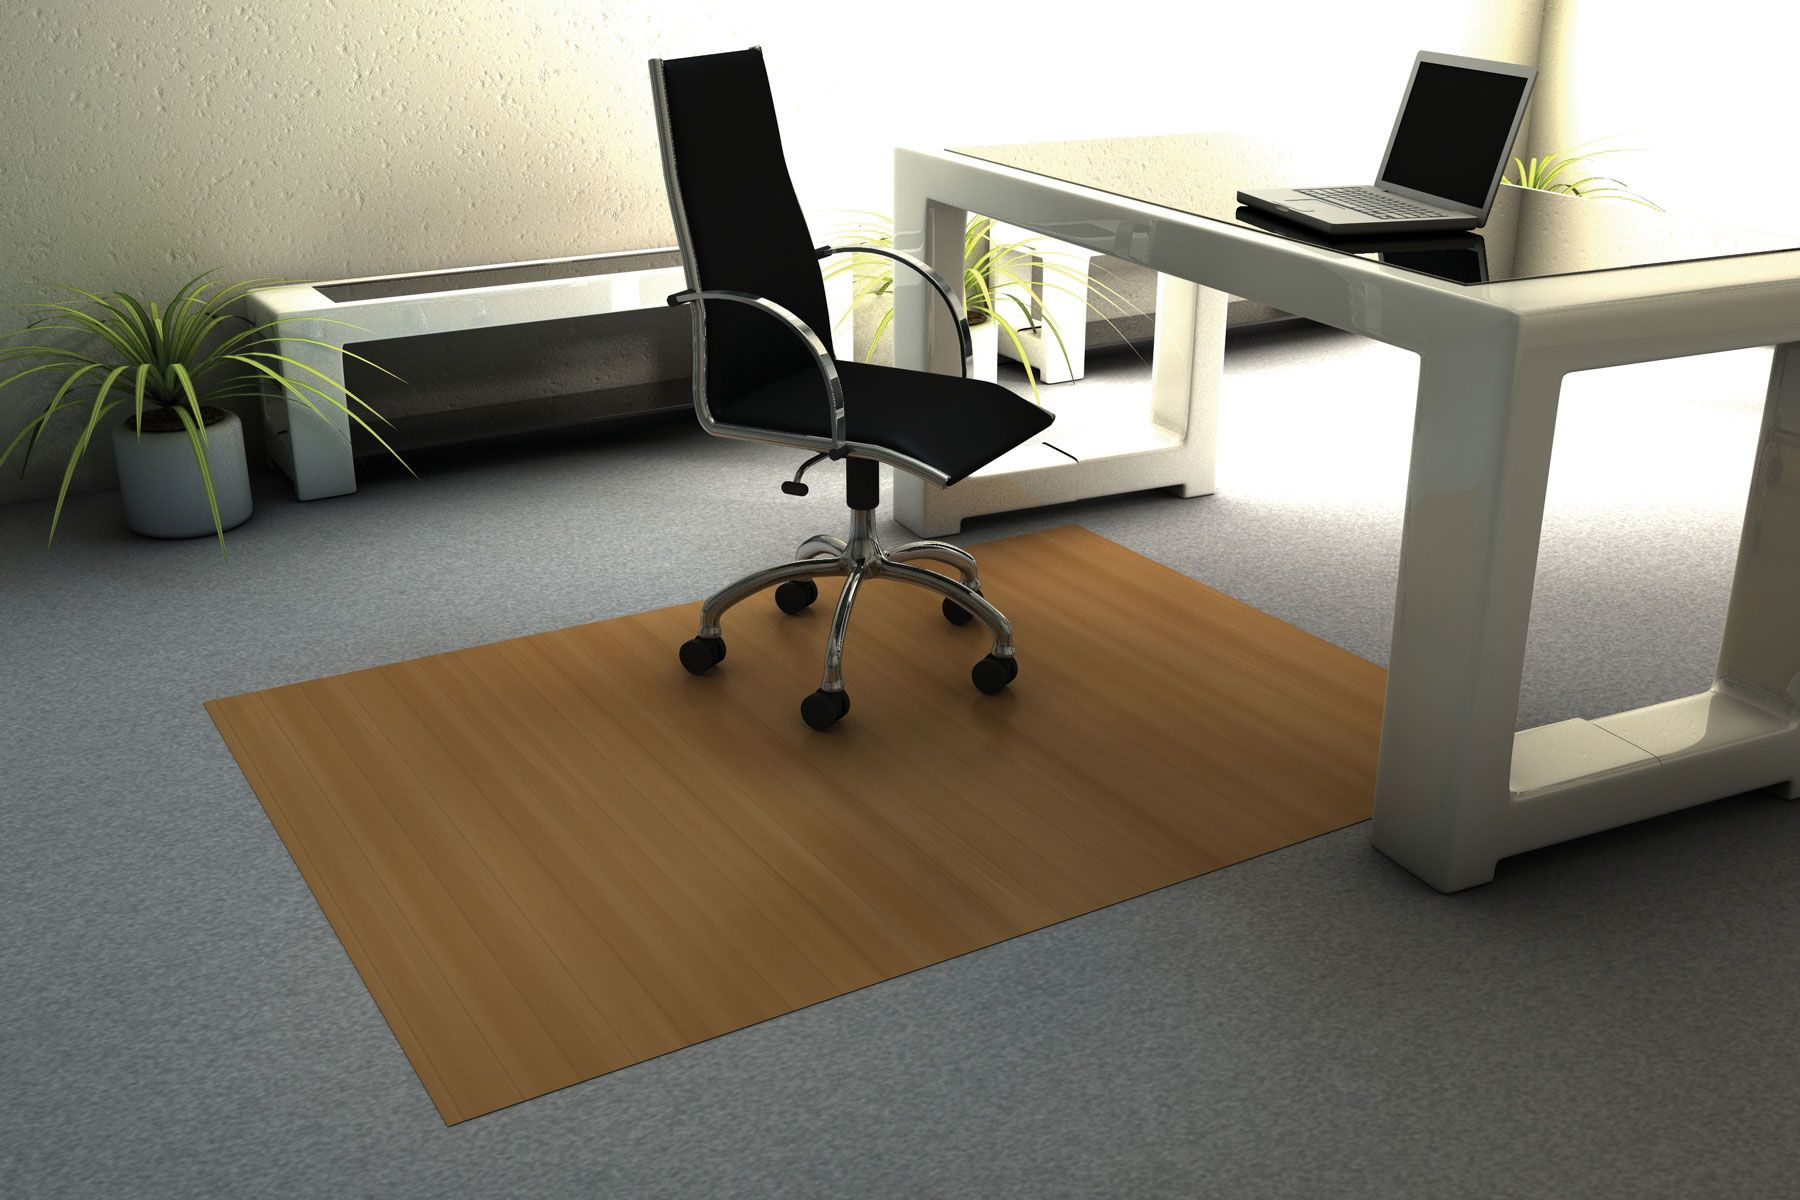 Bamboo Chair Mat 46 x 60 Natural Lies flat right out of